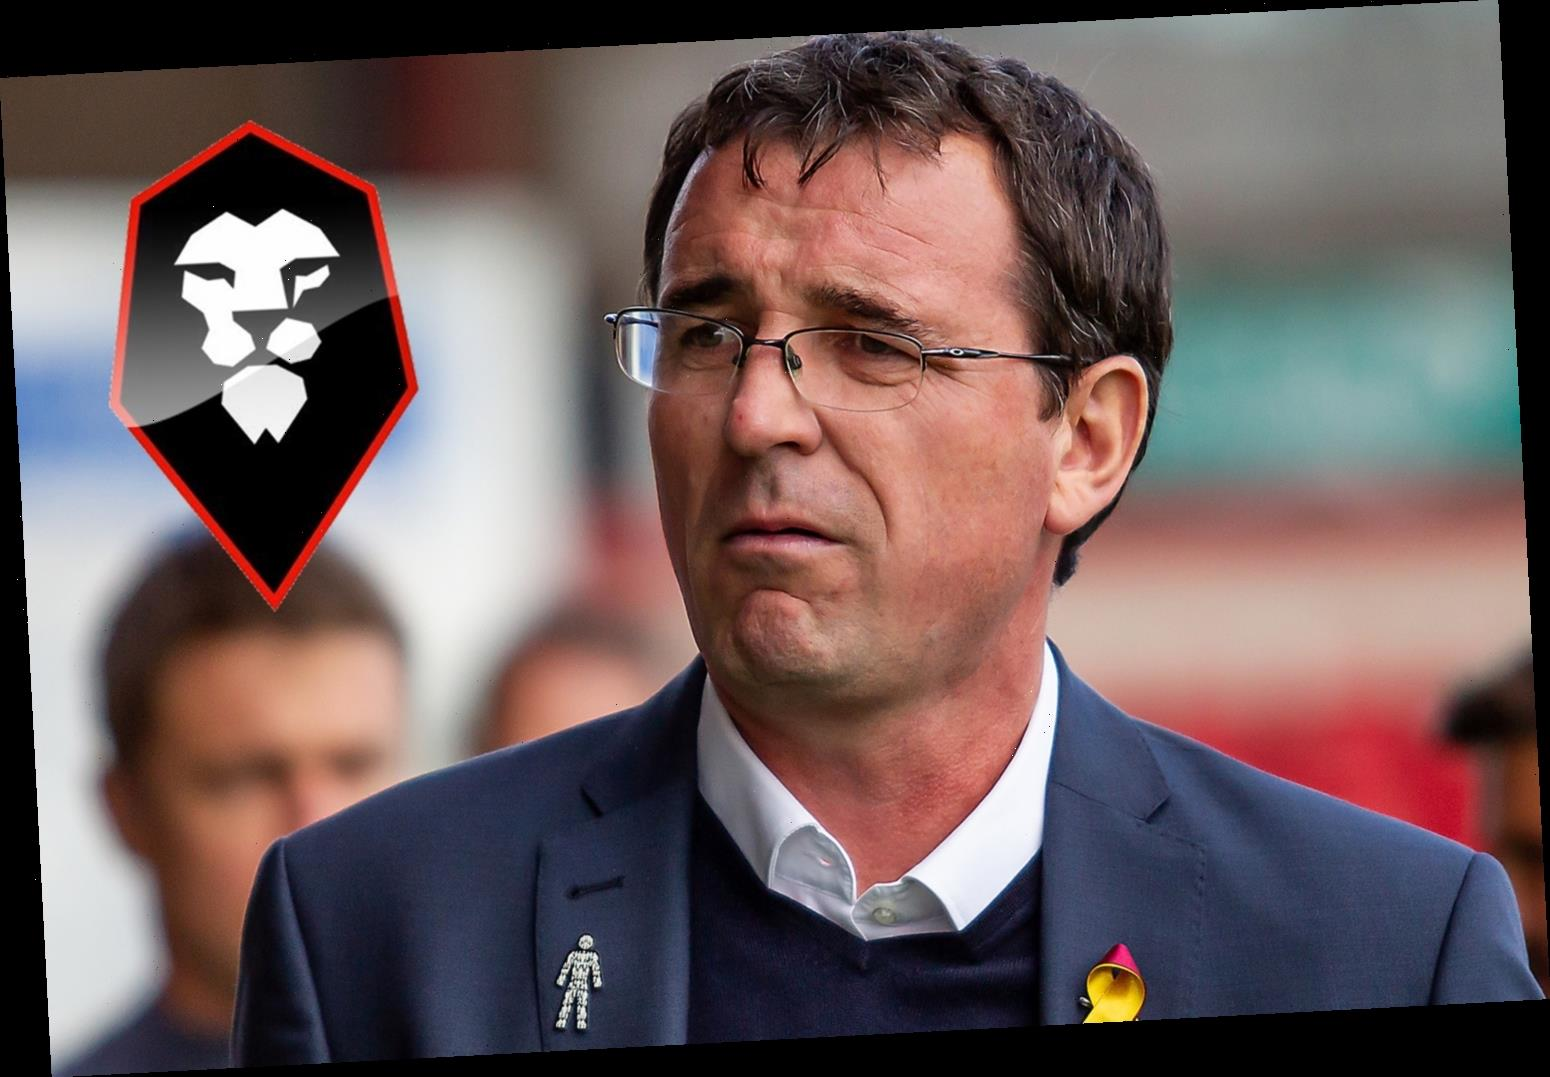 Gary Bowyer named as new Salford boss by Neville and Co after sacking Richie Wellens following showdown talks